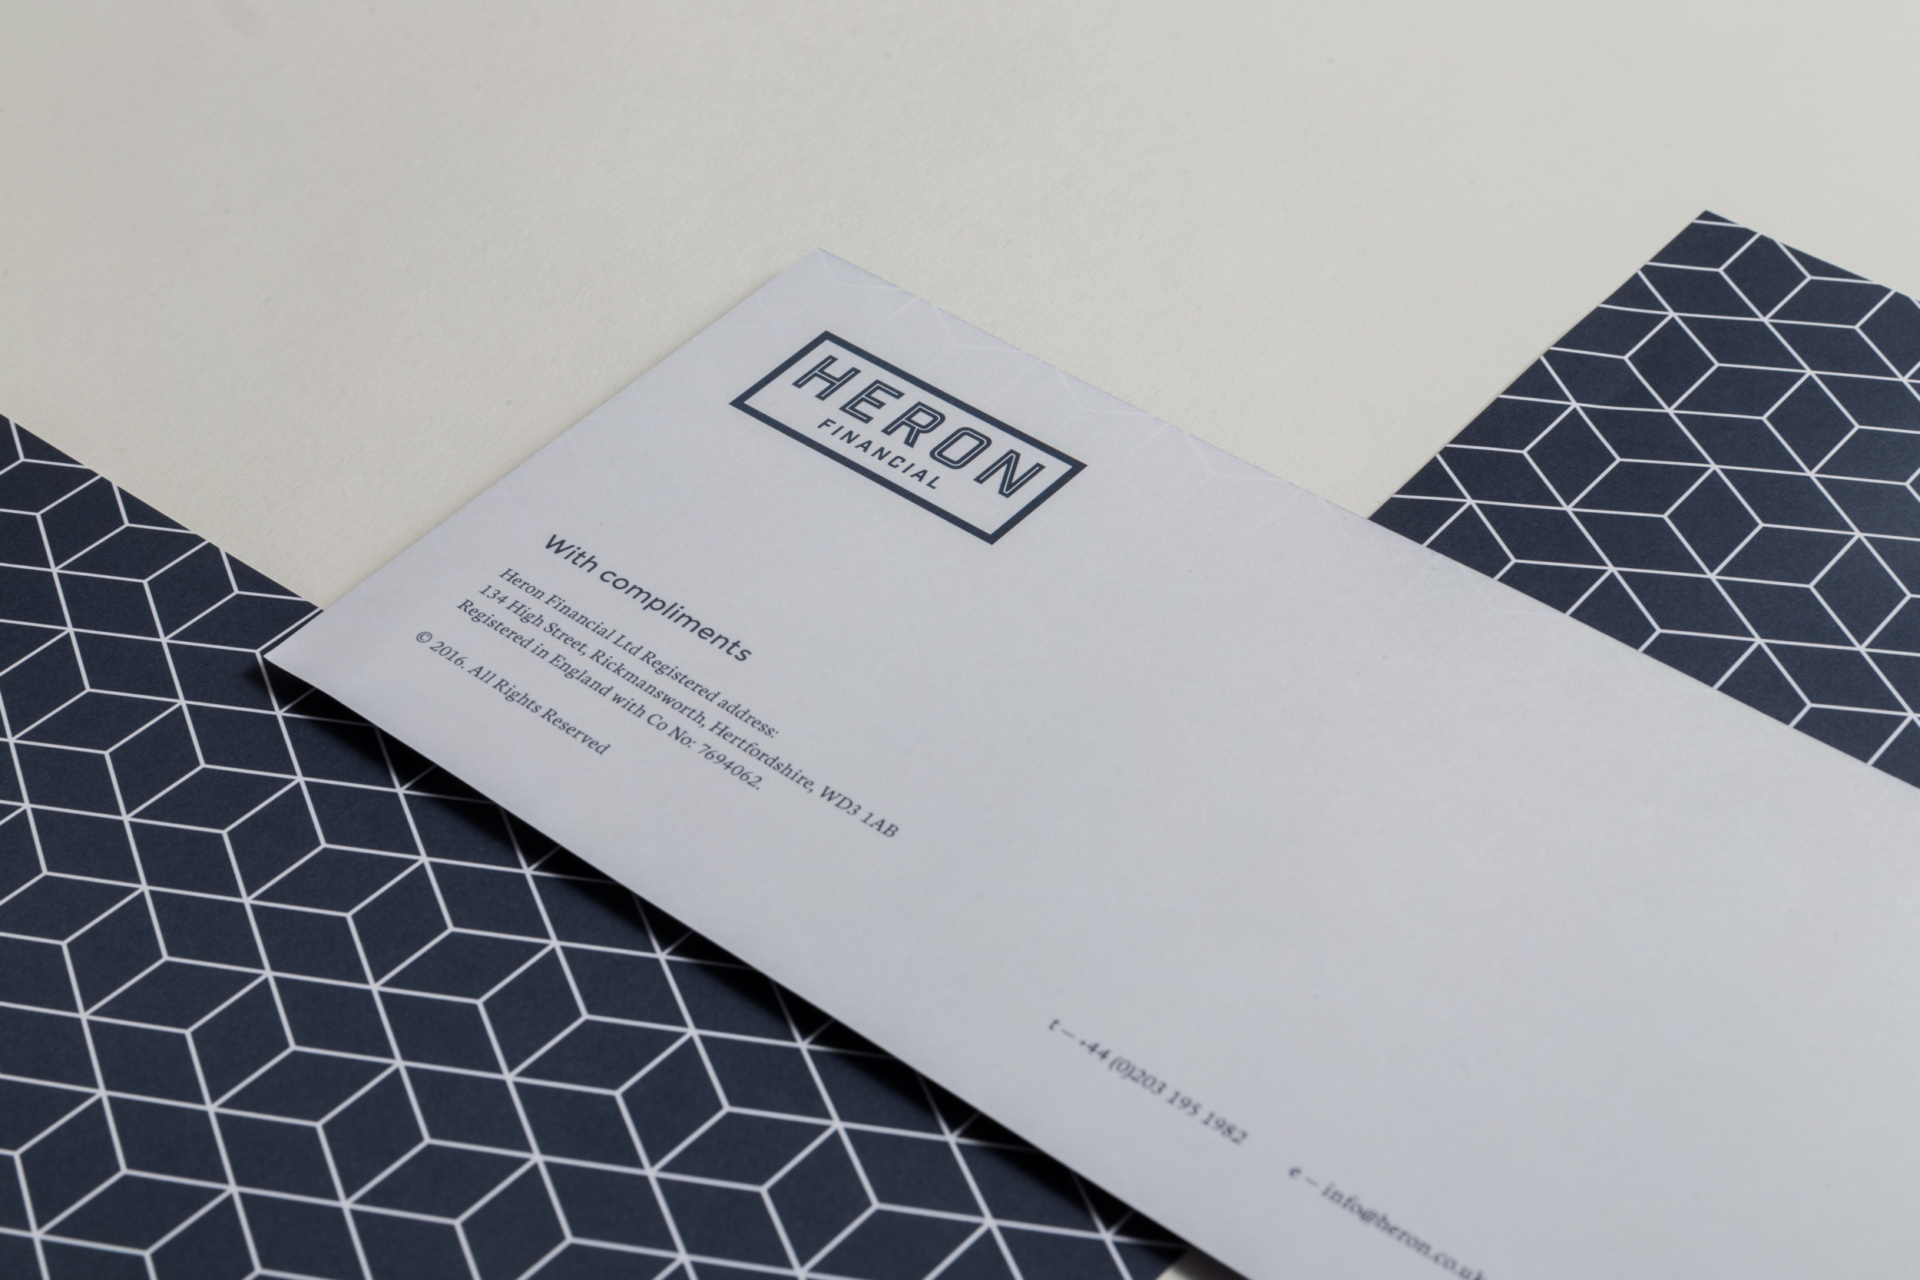 Examples of stationary design for Heron Financial, Mortgage and Insurance Brokers. Letterhead, and patterned back. Graphic design by Barefaced Studios, design agency based in Islington, North London.